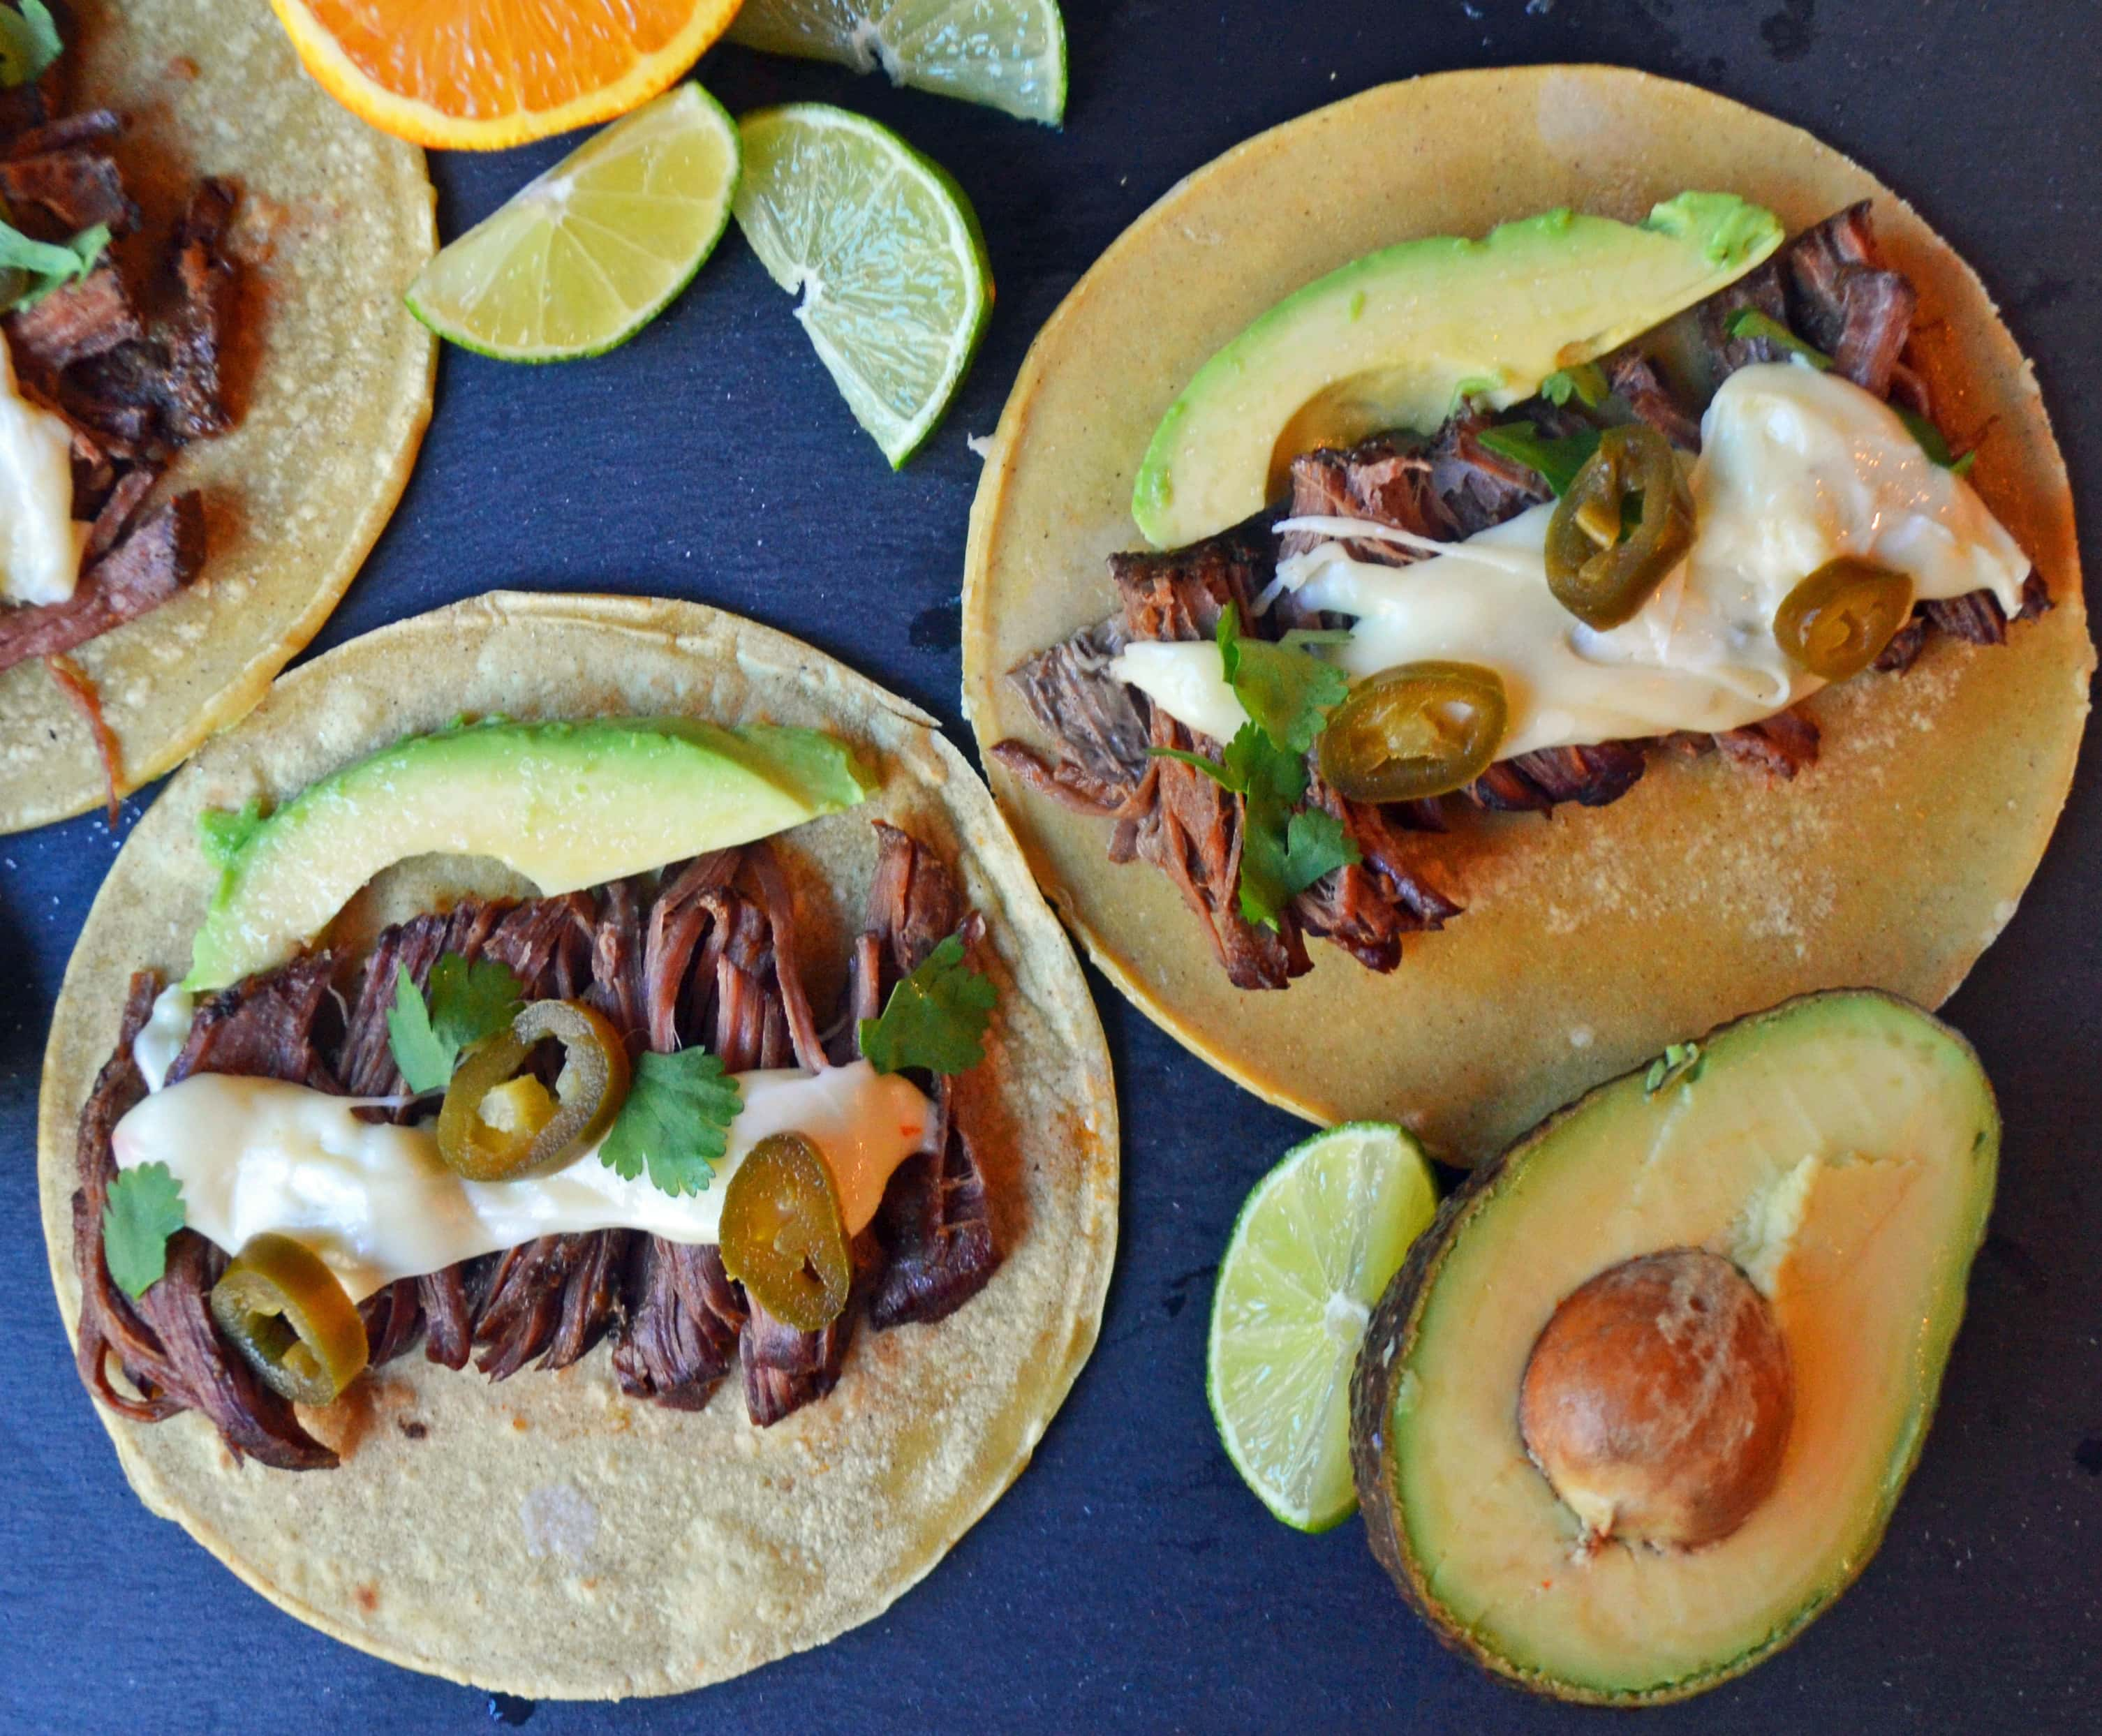 Beef Barbacoa Tacos, Pepper Jack Queso, Queso, Tacos, Beef Tacos, Beef Tacos with Queso